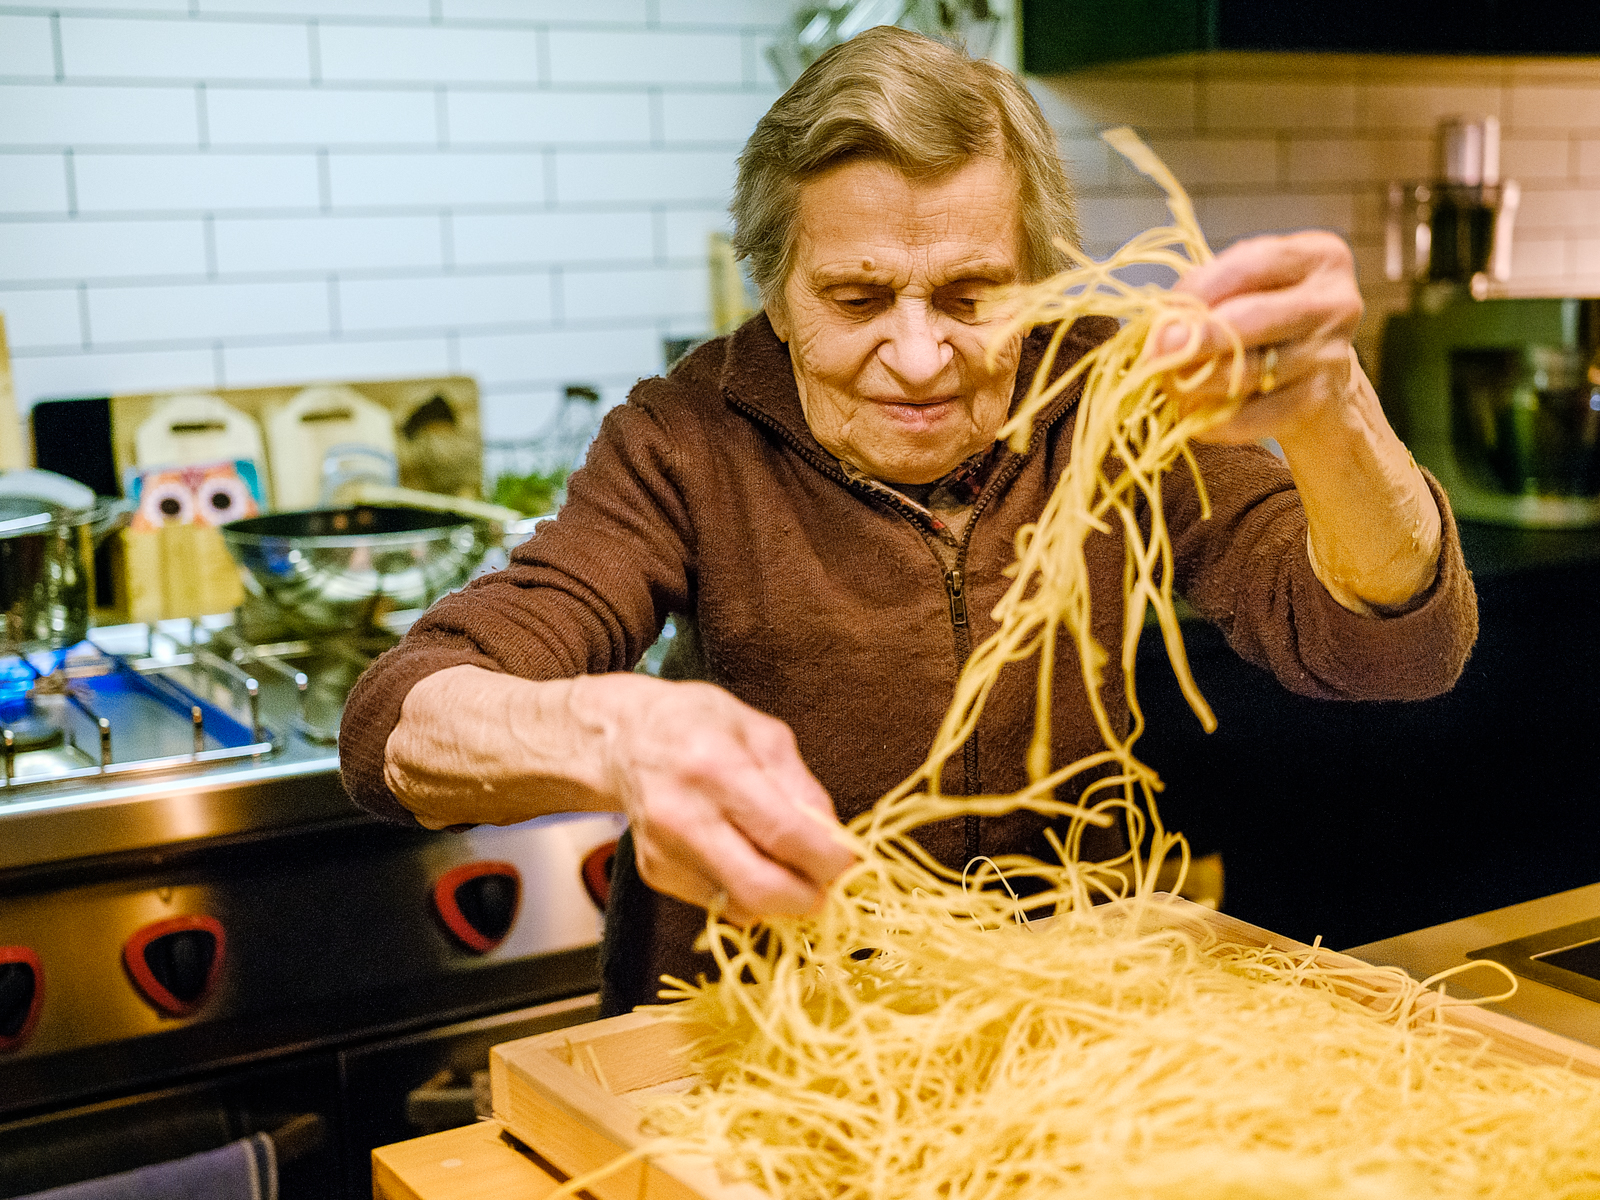 Home made pasta prepared and cooked by the Nonna is great treat and tastes like heaven (f/2.8, 1/60s, ISO 12'800)